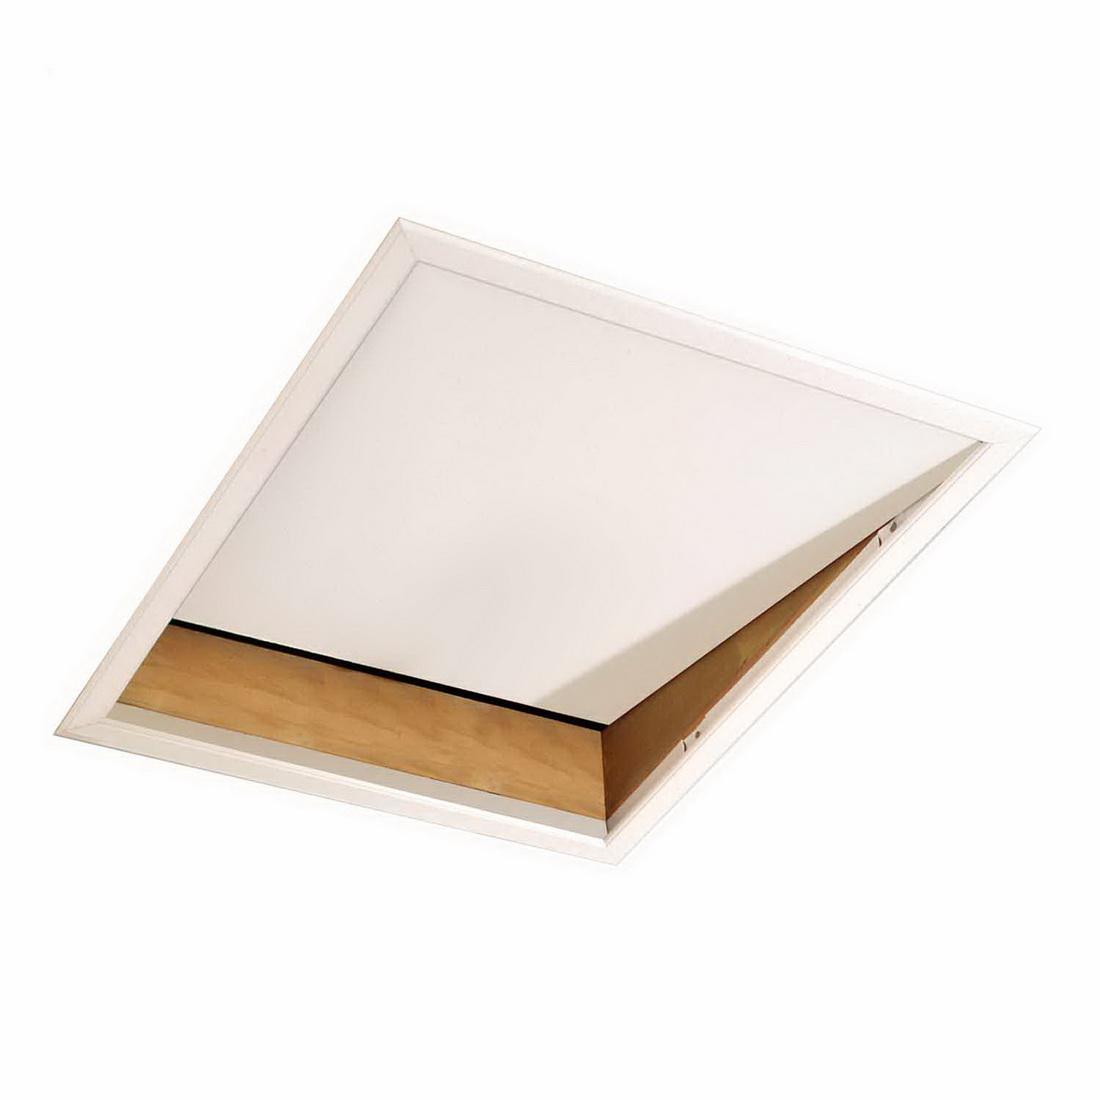 635x535mm  Ceiling Hatch White